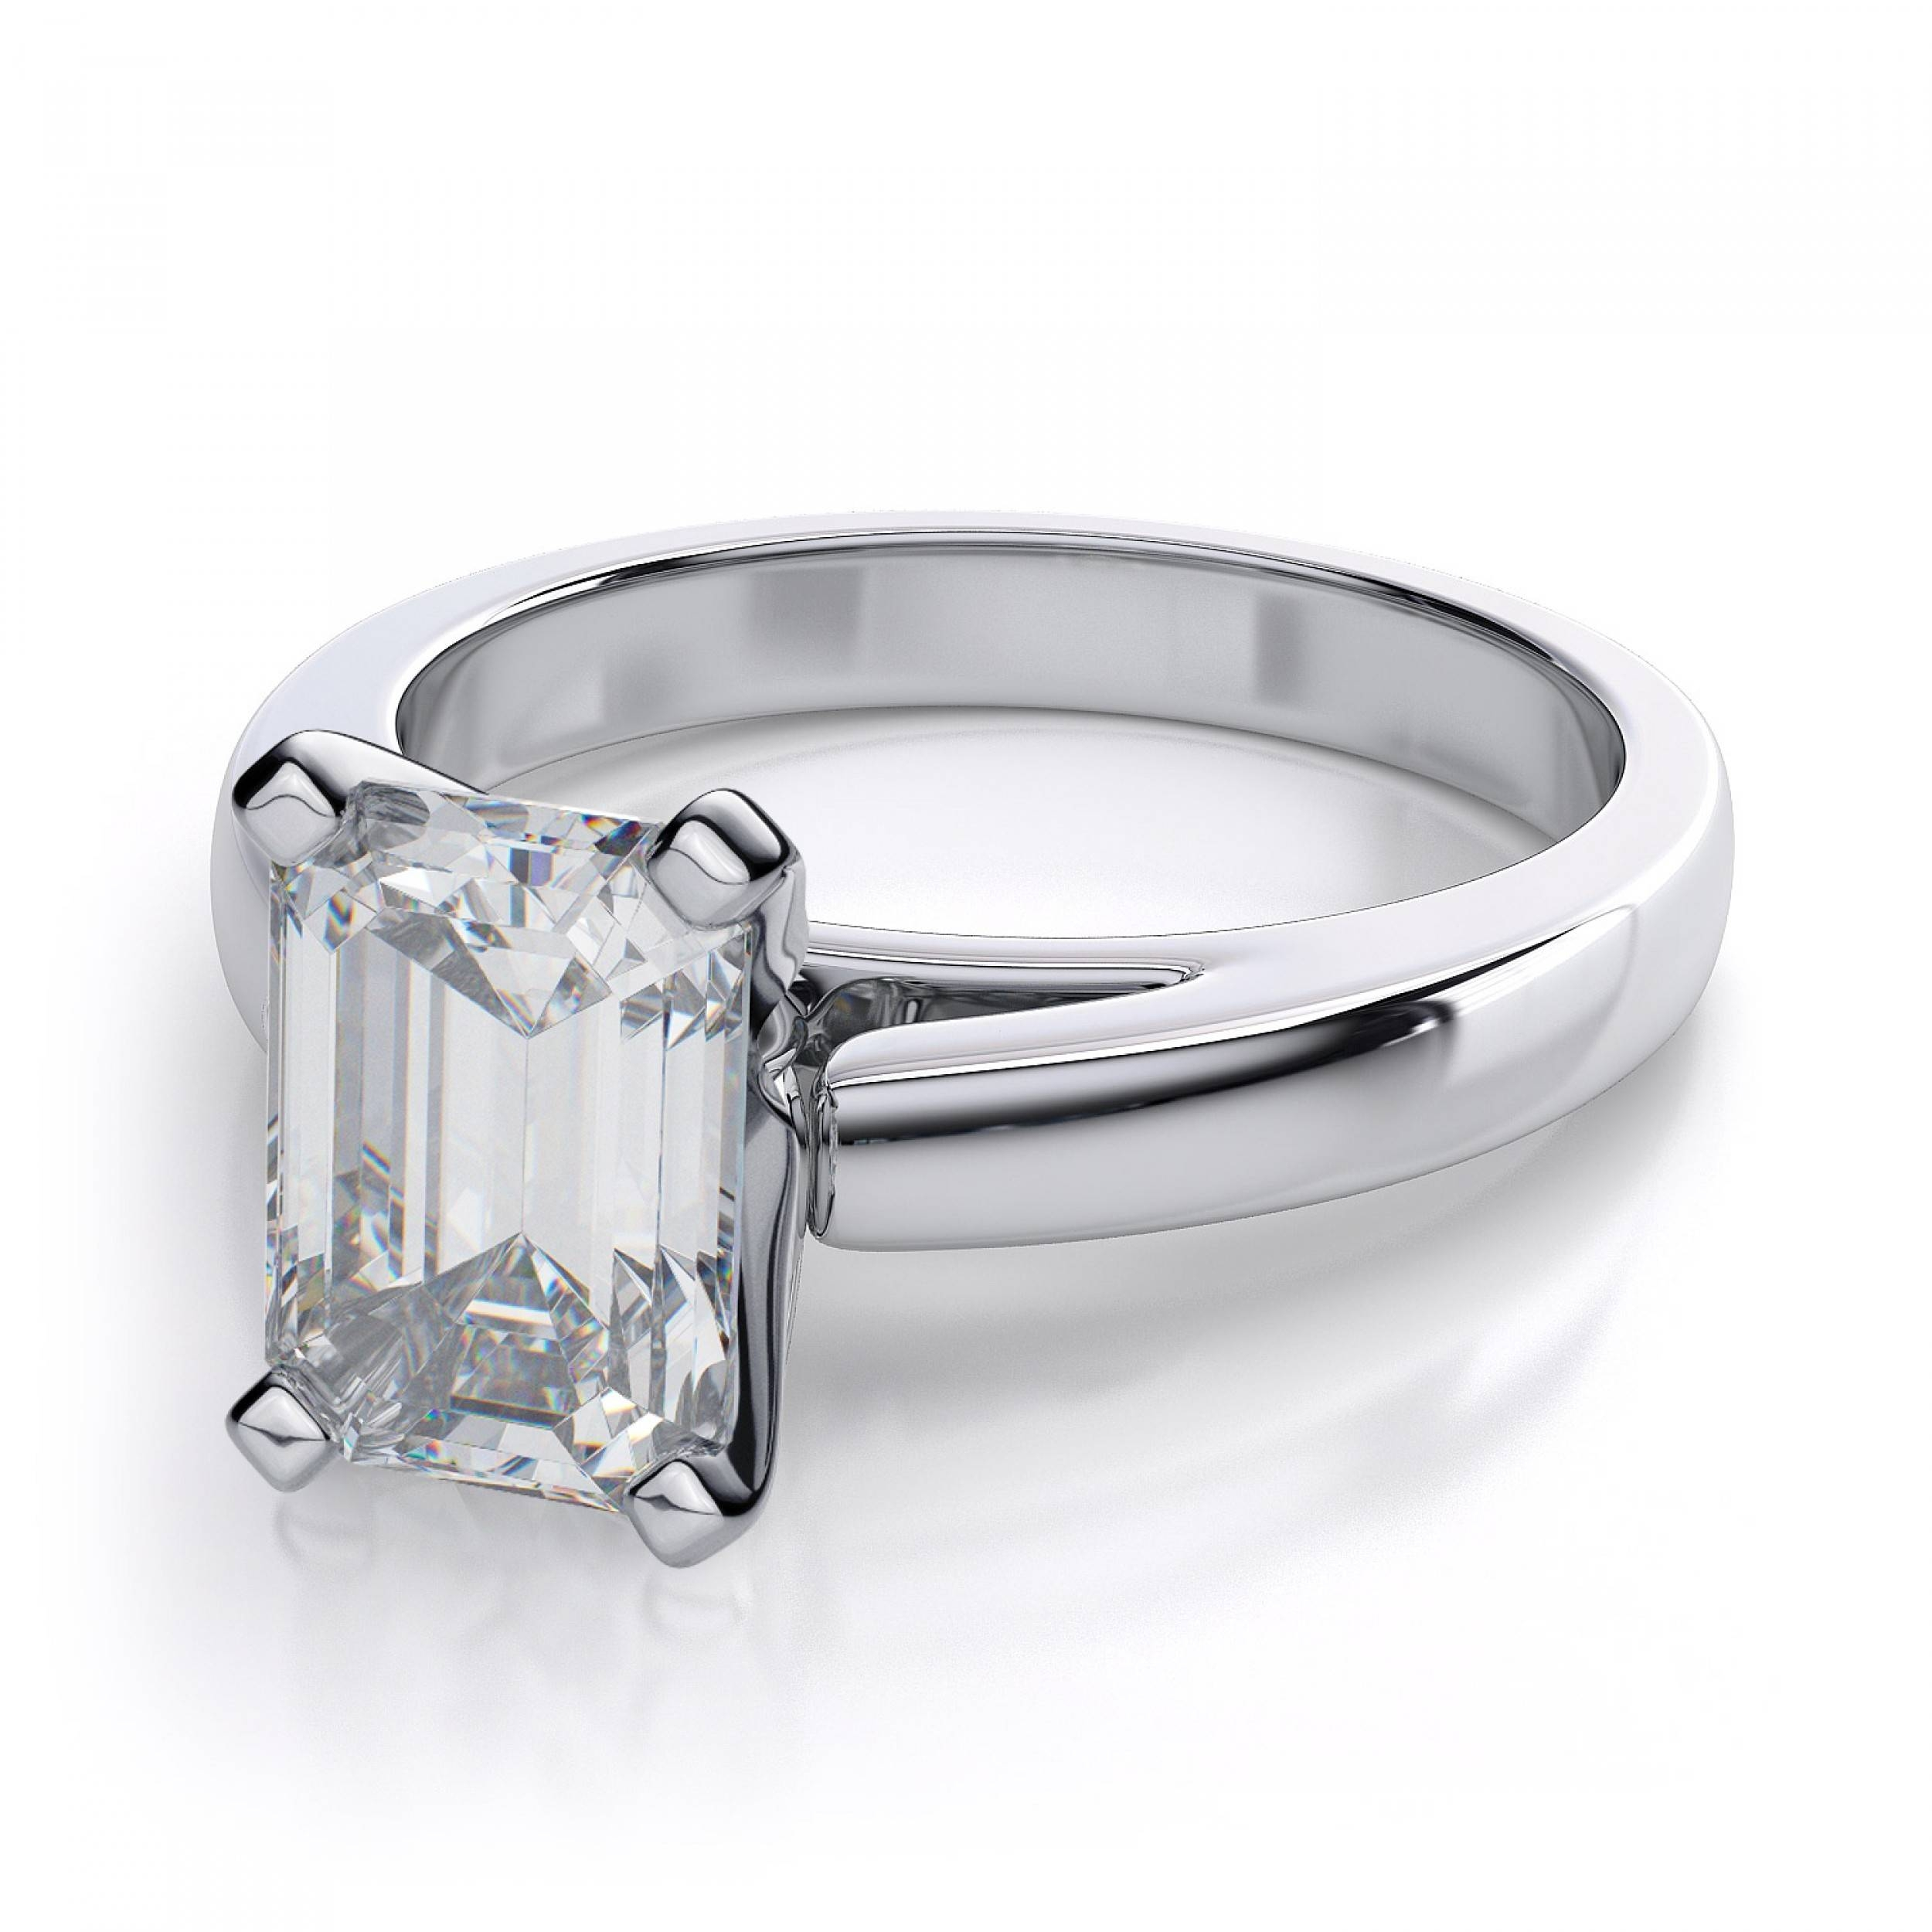 Emerald Cut Solitaire Engagement Ring – 14k White Gold Regarding White Emerald Engagement Rings (View 6 of 15)